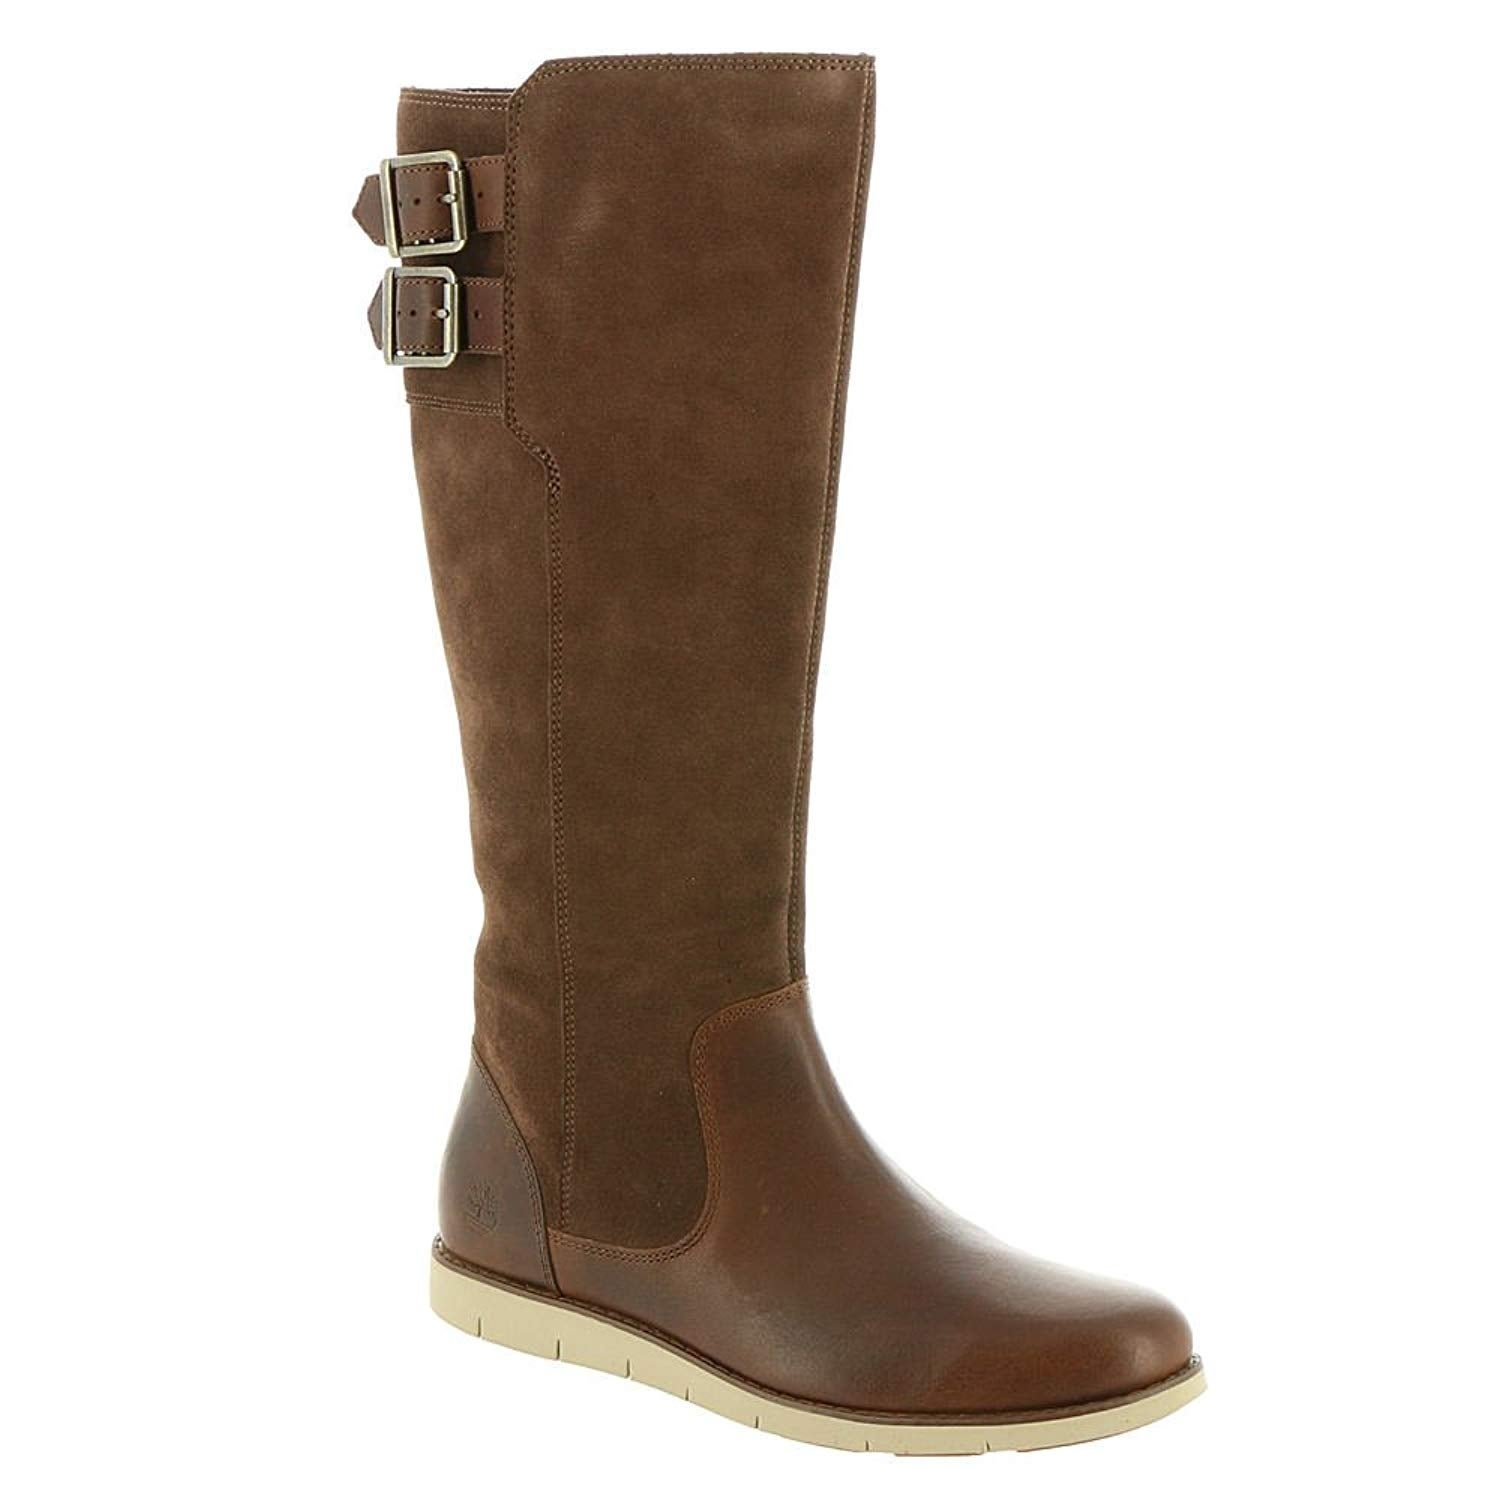 timeless design adf17 73fcb Shop Timberland Womens Lakeville Tall Boot - Free Shipping Today -  Overstock - 23133591